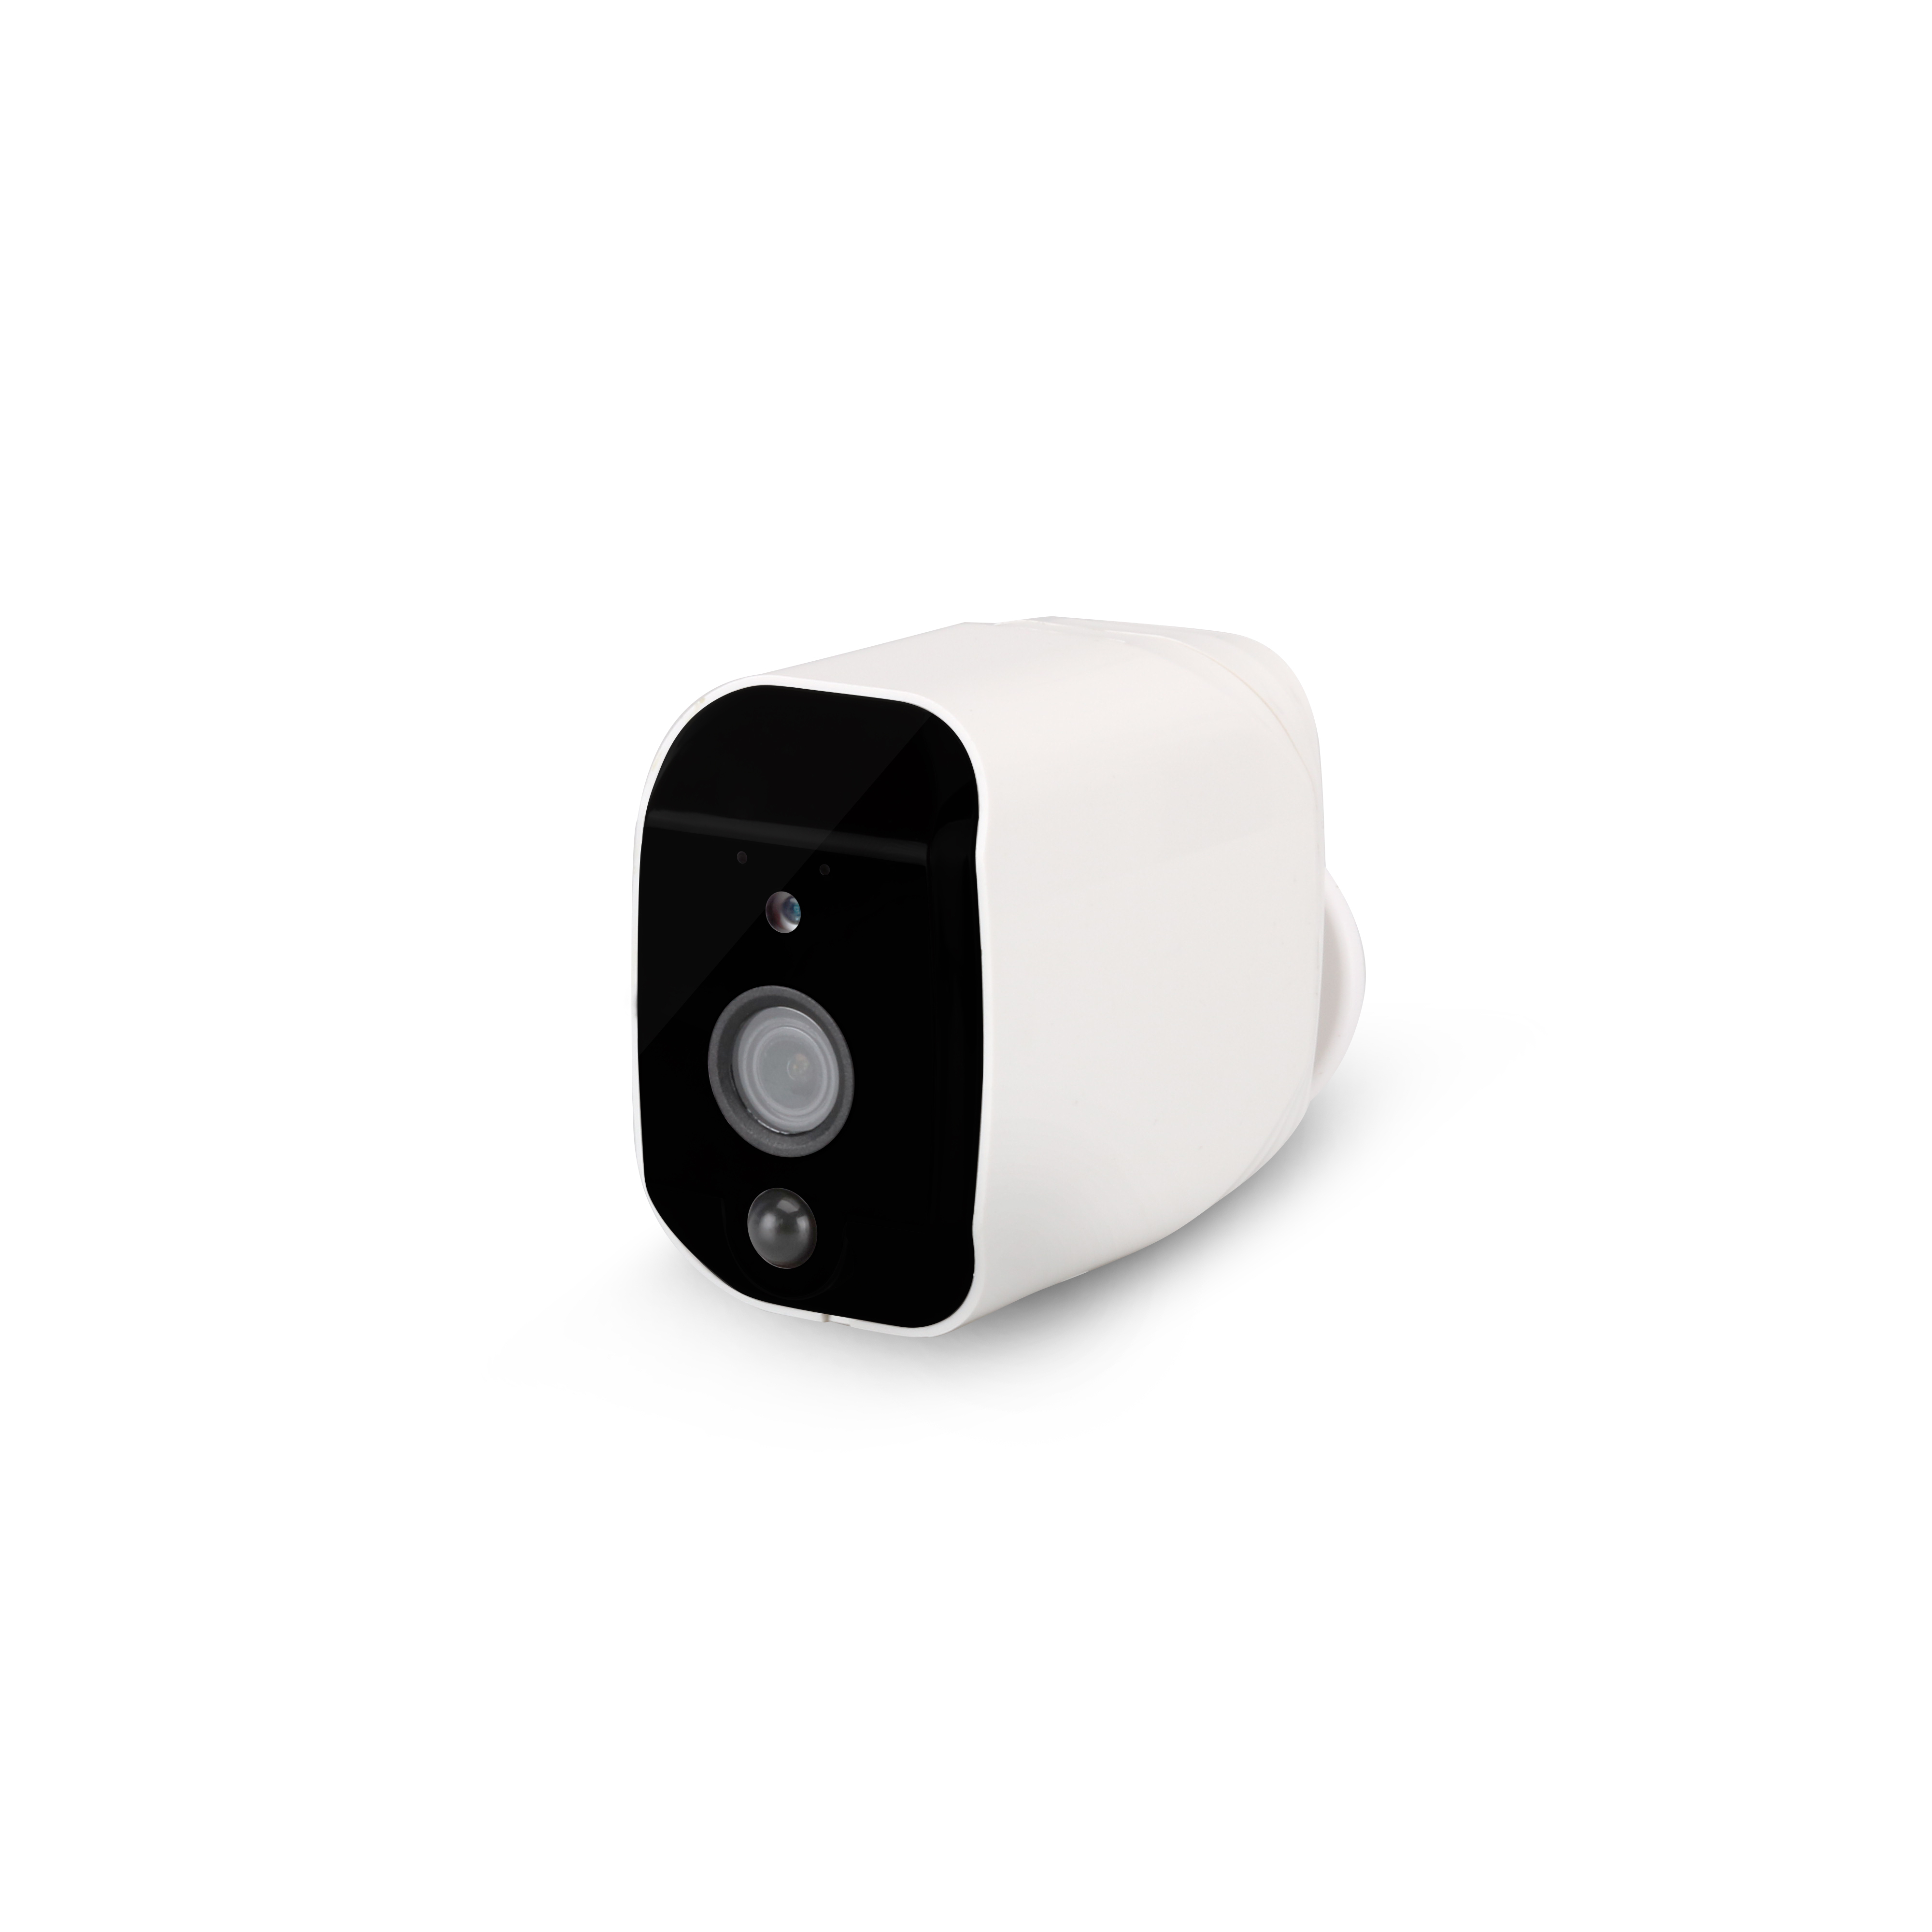 China Polaroid Camera Manufacturers And 8s Instax Shanghai Girl Suppliers On